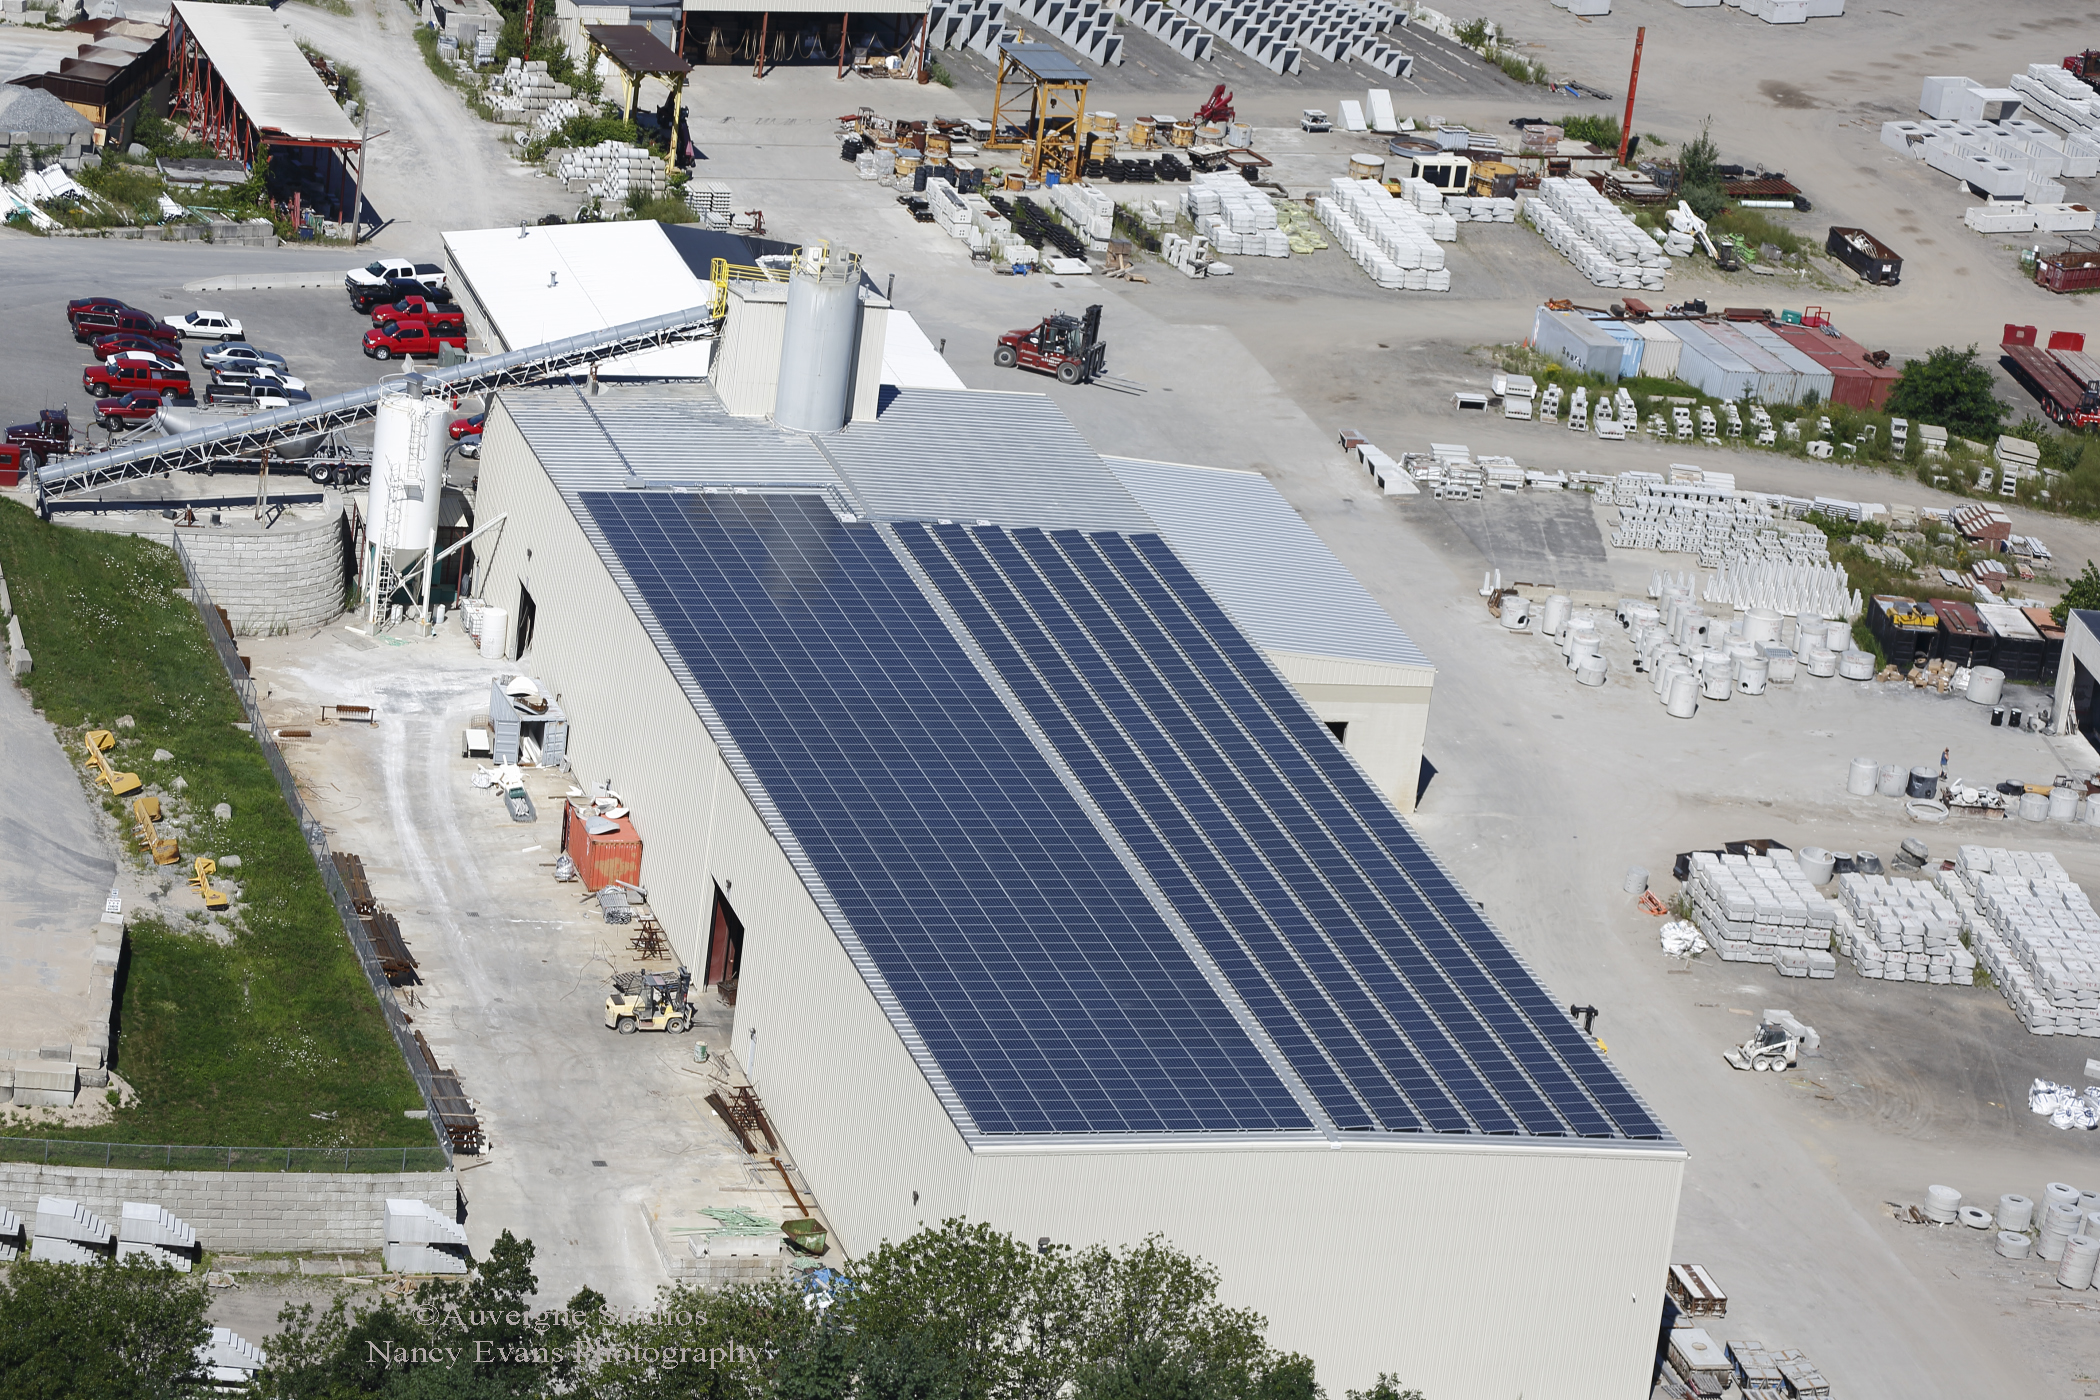 1184 panels are in this system